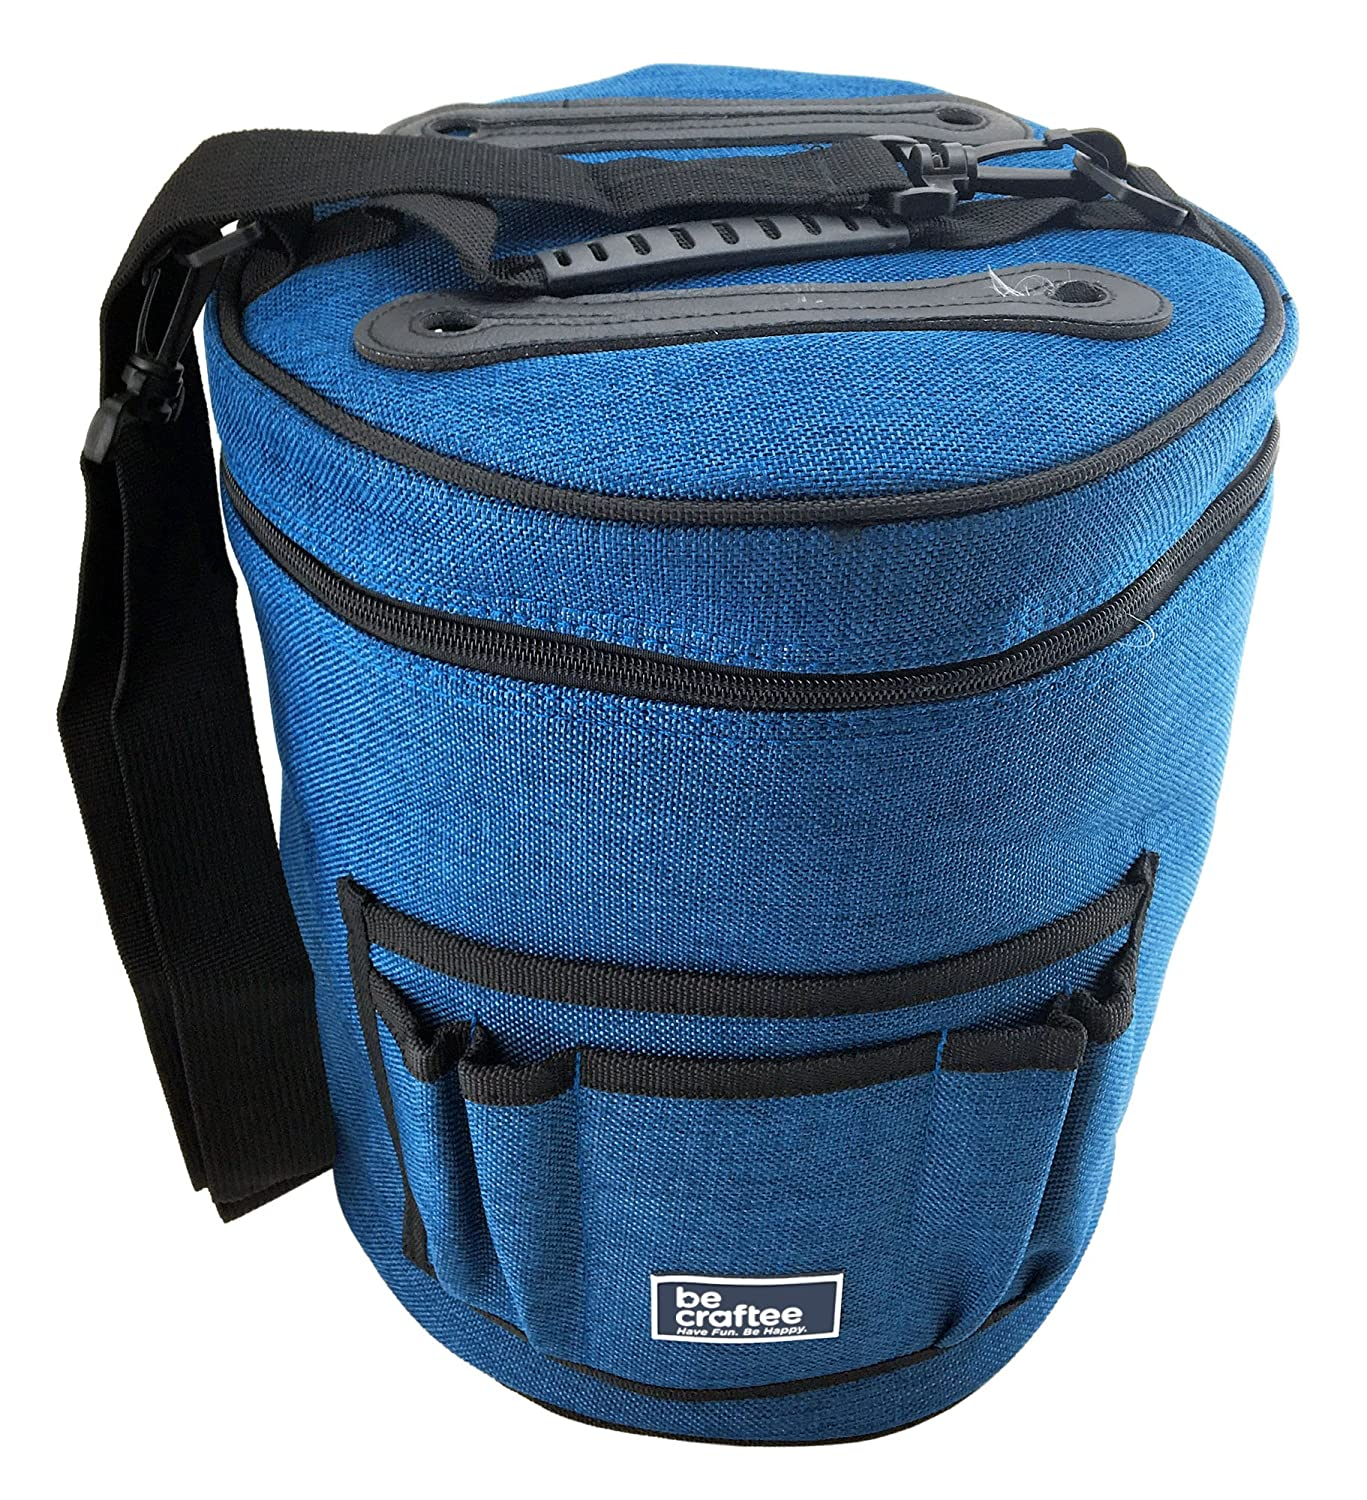 BEST KNITTING BAG FOR YARN STORAGE. Portable, Light and Easy to Carry- enjoy knitting /crocheting anywhere. Pockets for Accessories and Slits on Top to Protect Yarn and Prevent Tangling.